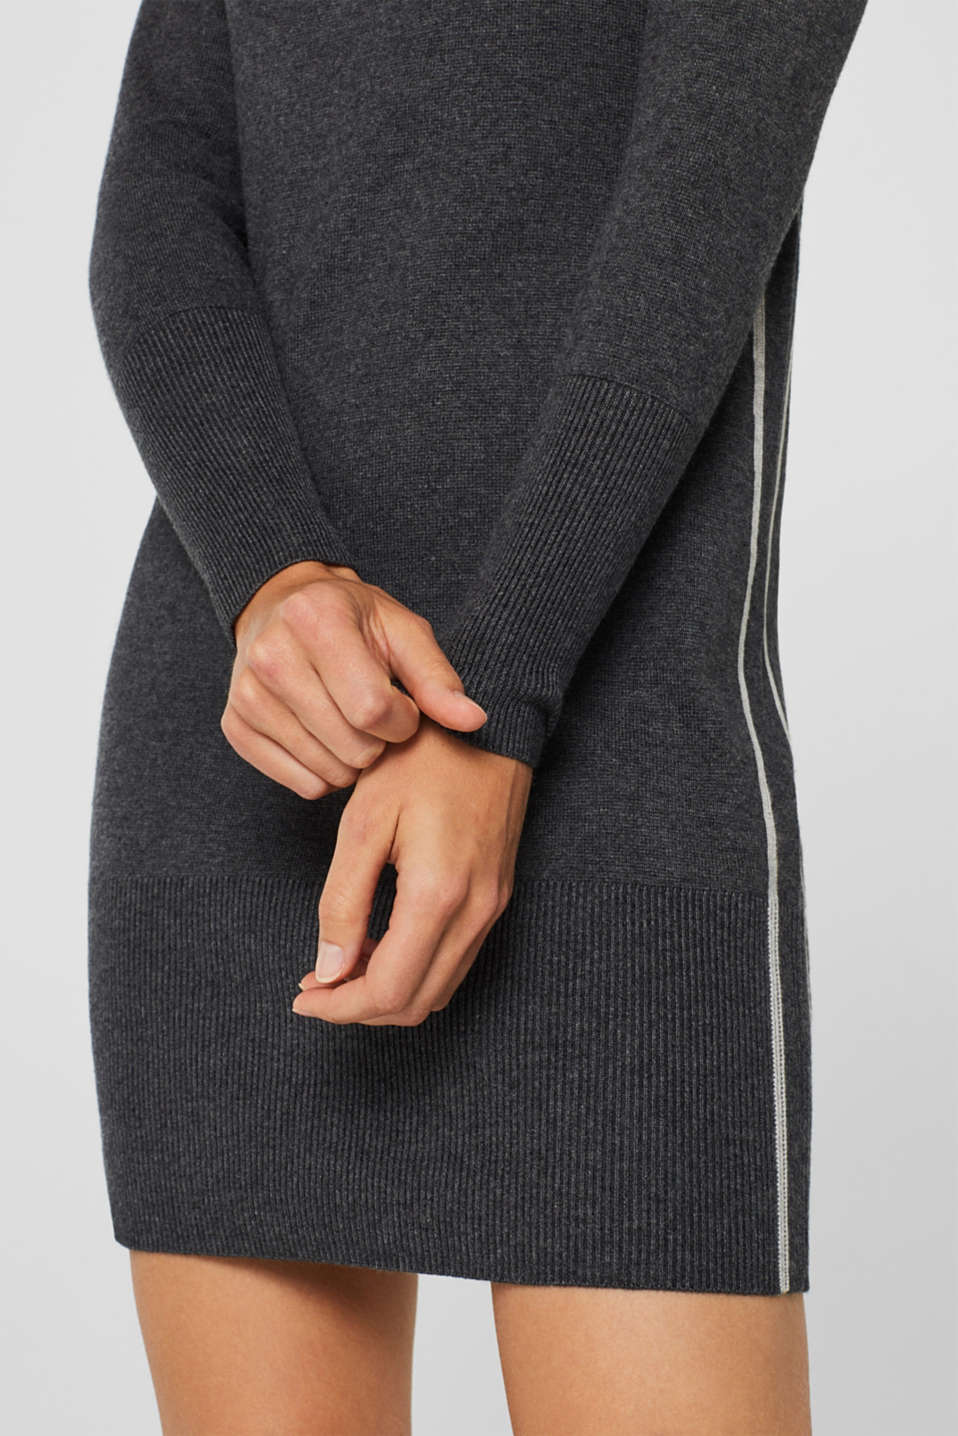 Knit dress with a zip-up band collar, GUNMETAL 5, detail image number 6